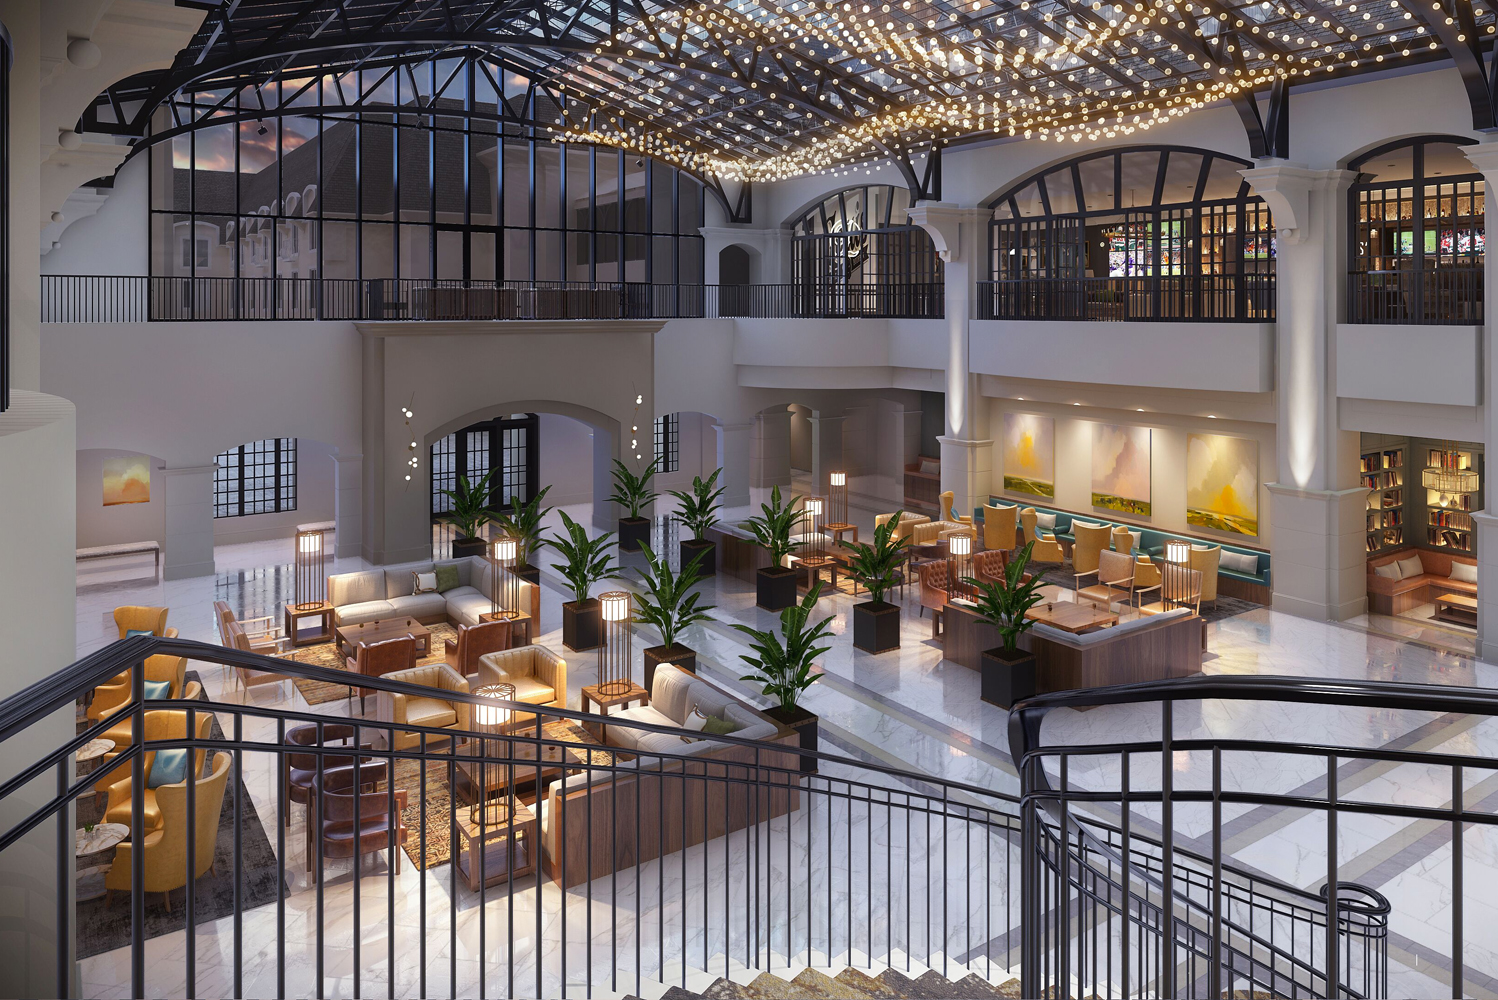 The transformation will include a complete overhaul of 251 guestrooms and 24 suites, four new food and beverage outlets, the winery, as well as the resort lobby.